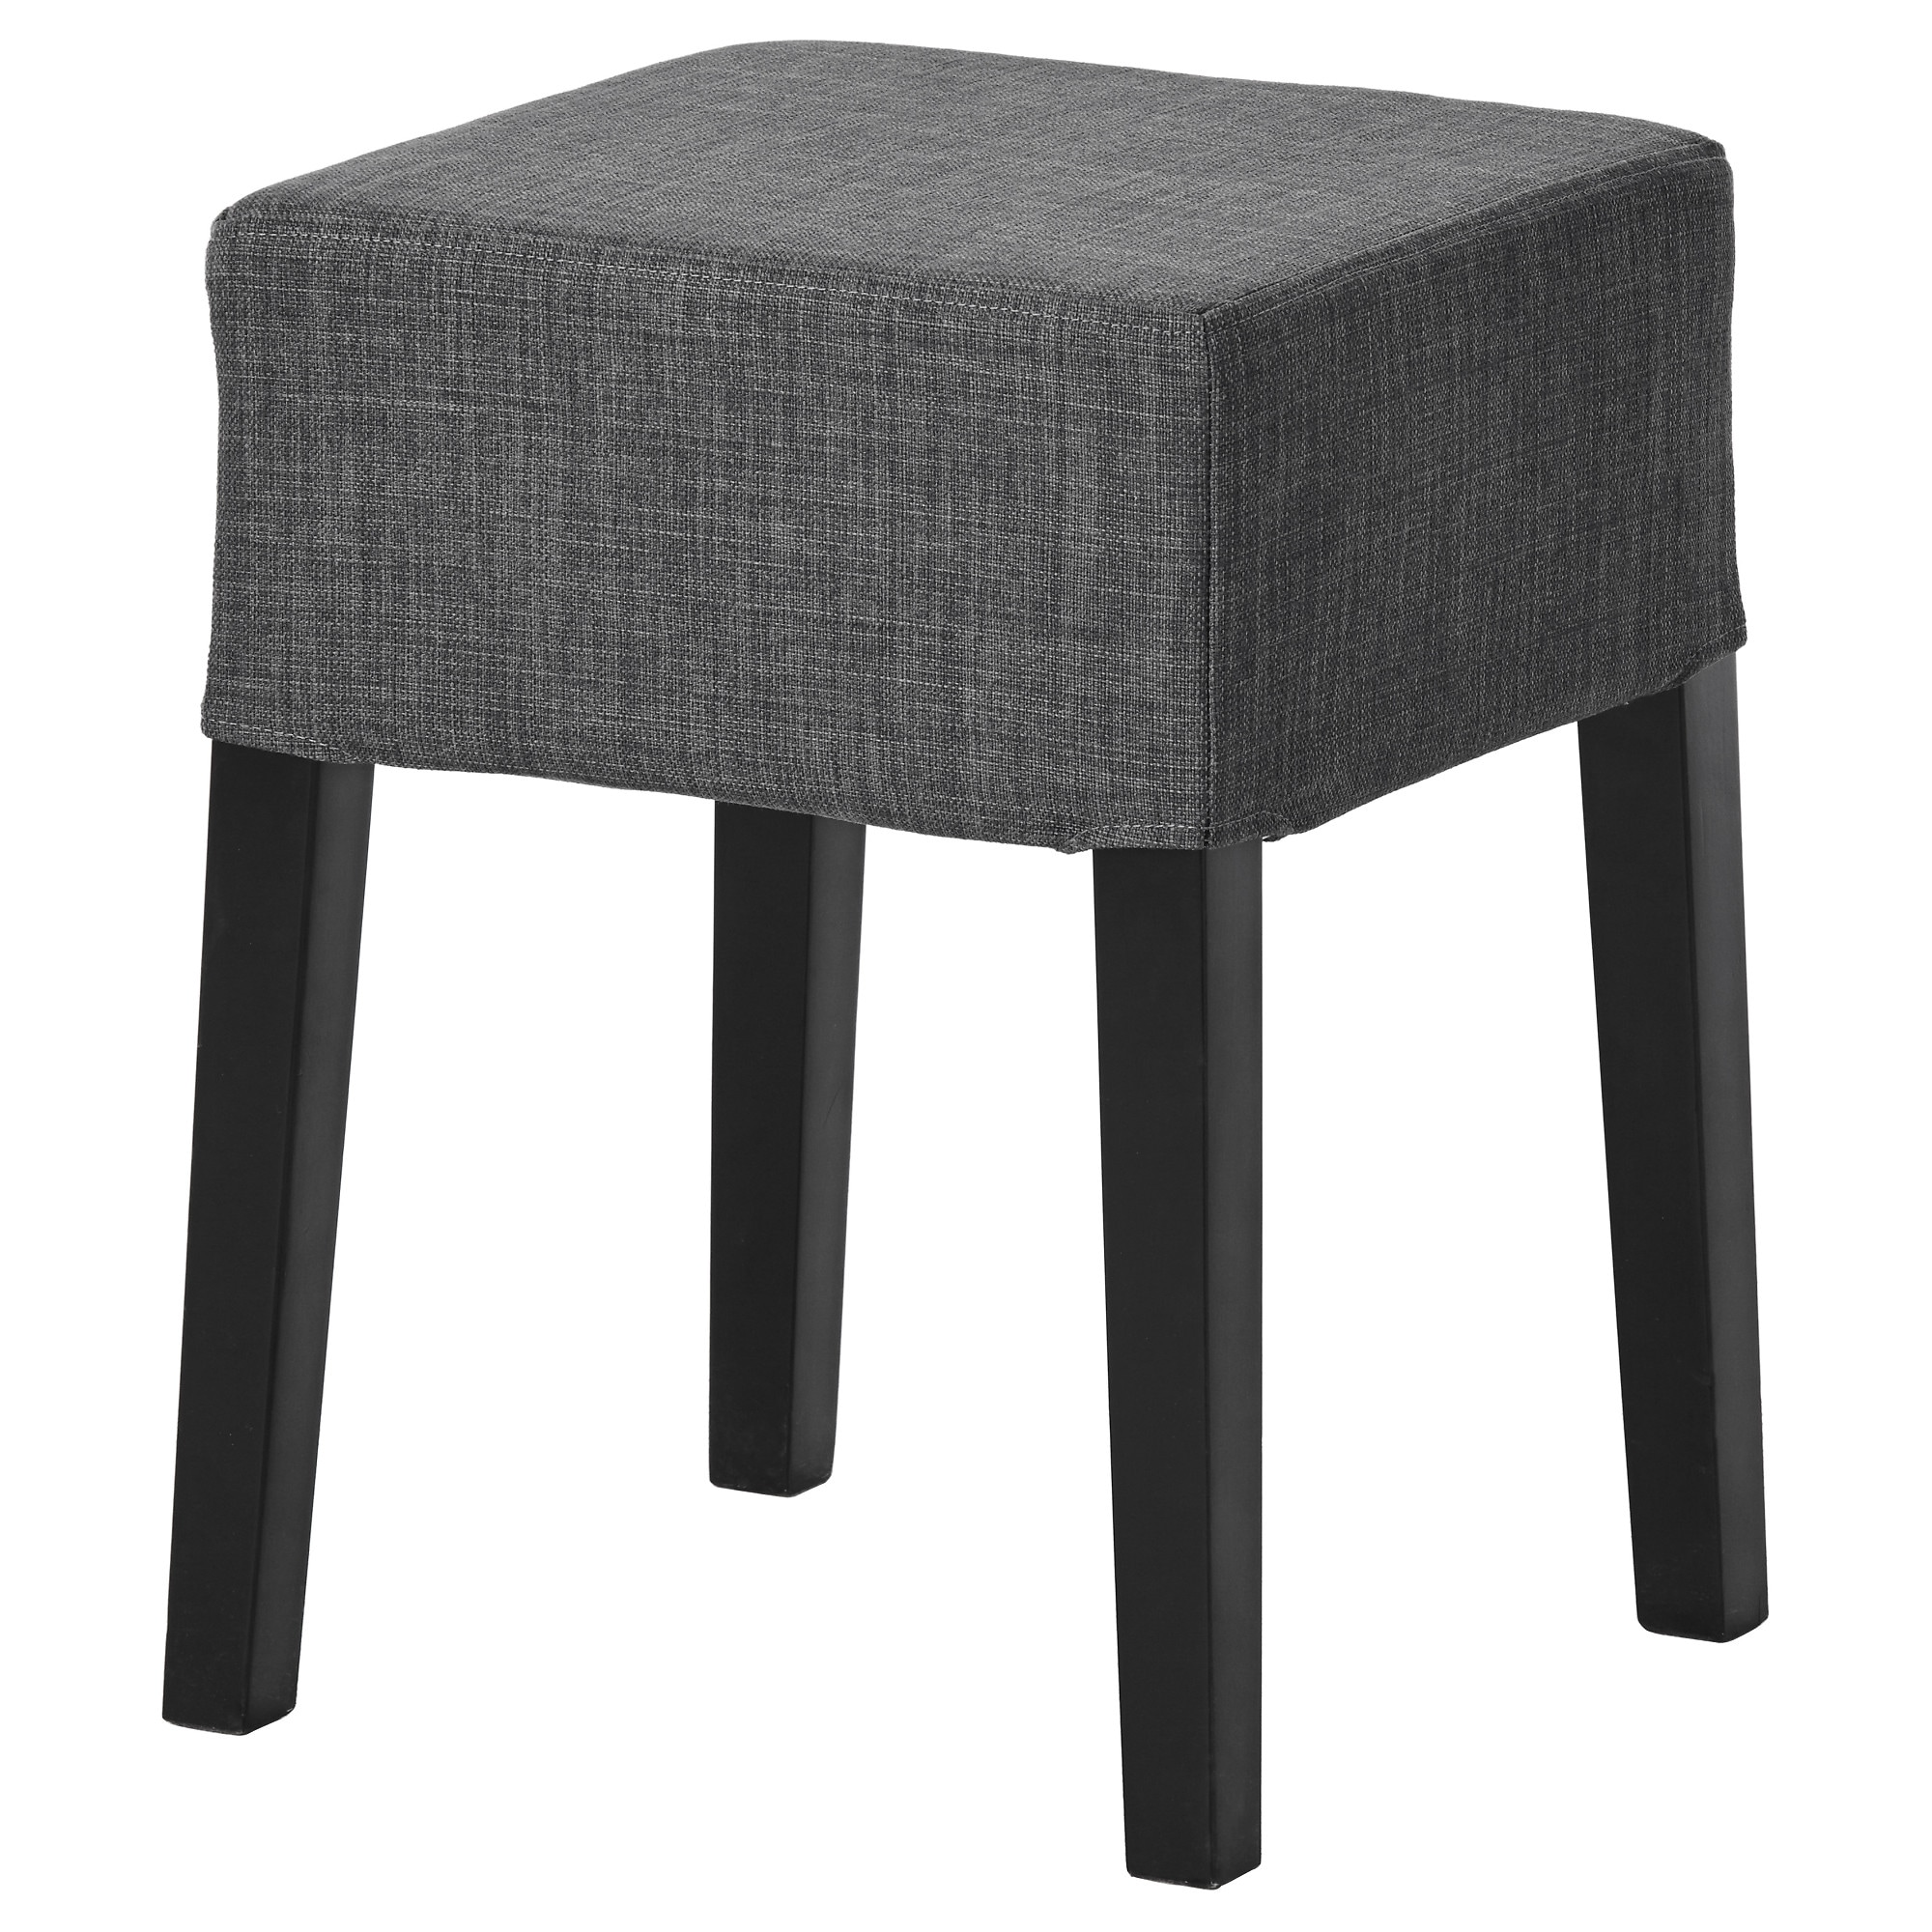 NILS stool black Skiftebo dark gray Tested for 243 lb Seat width  sc 1 st  Ikea & Stools u0026 benches - Benches u0026 Stools - IKEA islam-shia.org